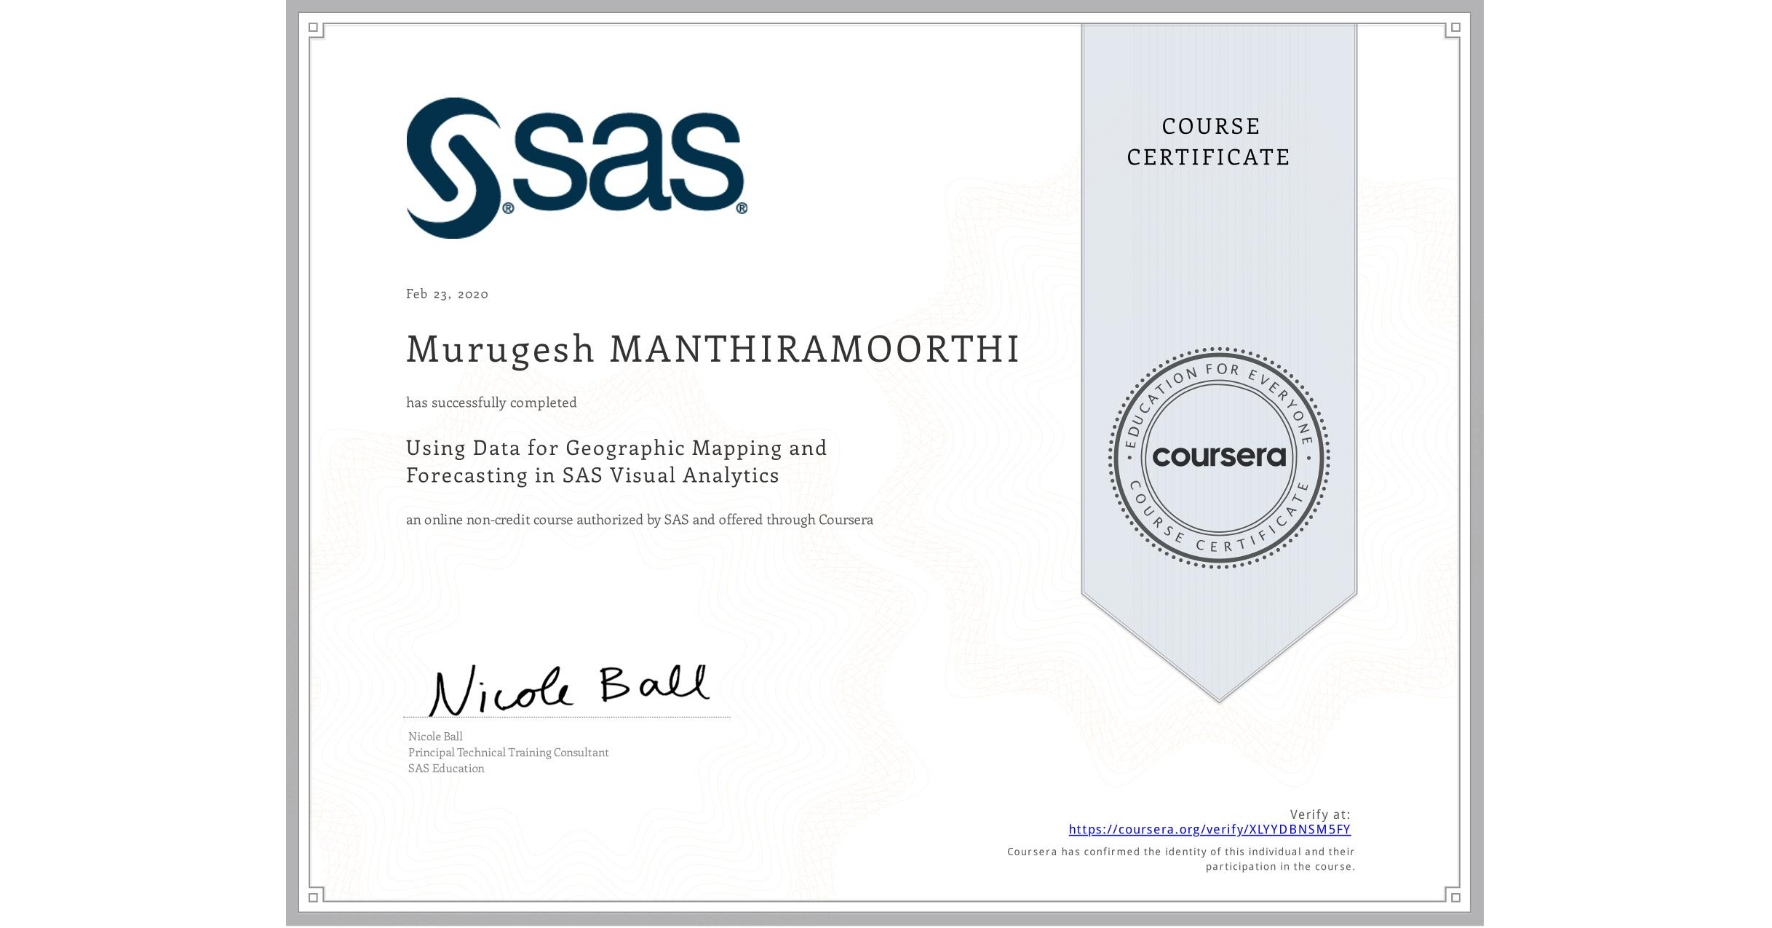 View certificate for Murugesh Manthiramoorthi, Using Data for Geographic Mapping and Forecasting in SAS Visual Analytics, an online non-credit course authorized by SAS and offered through Coursera